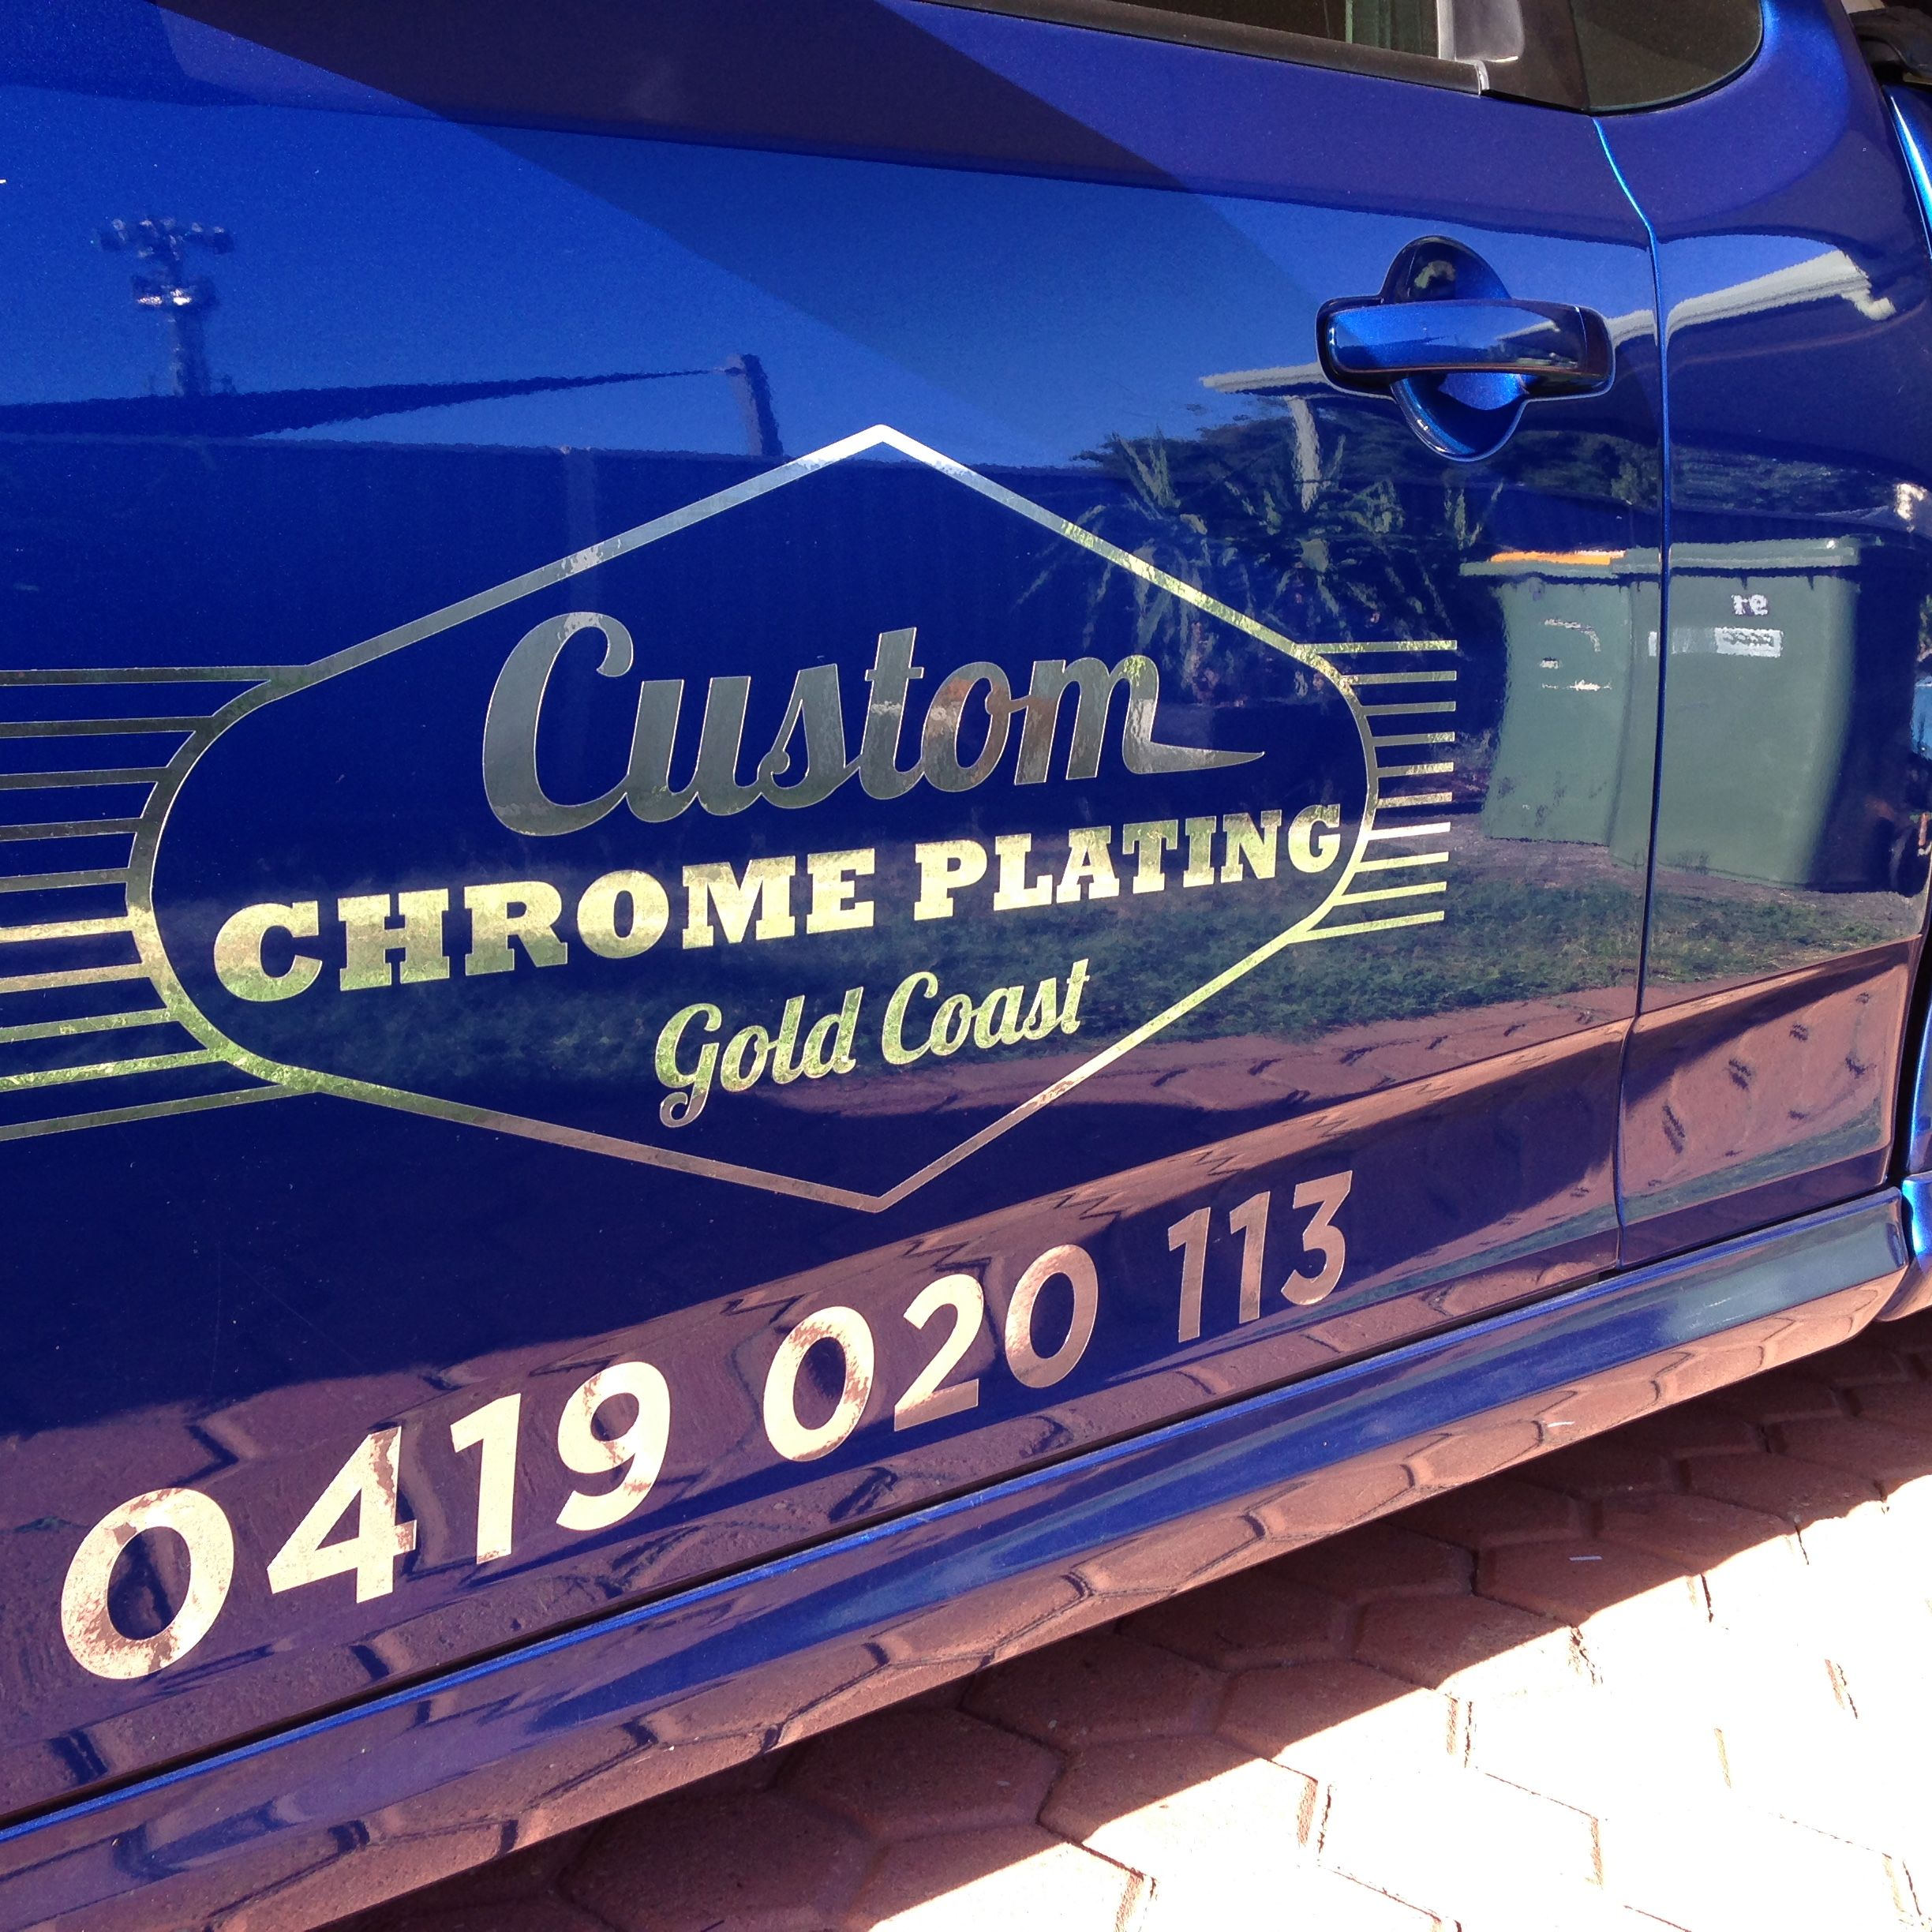 Sign Writing Vehicle - Custom Chrome Plating Gold Coast - Rasta